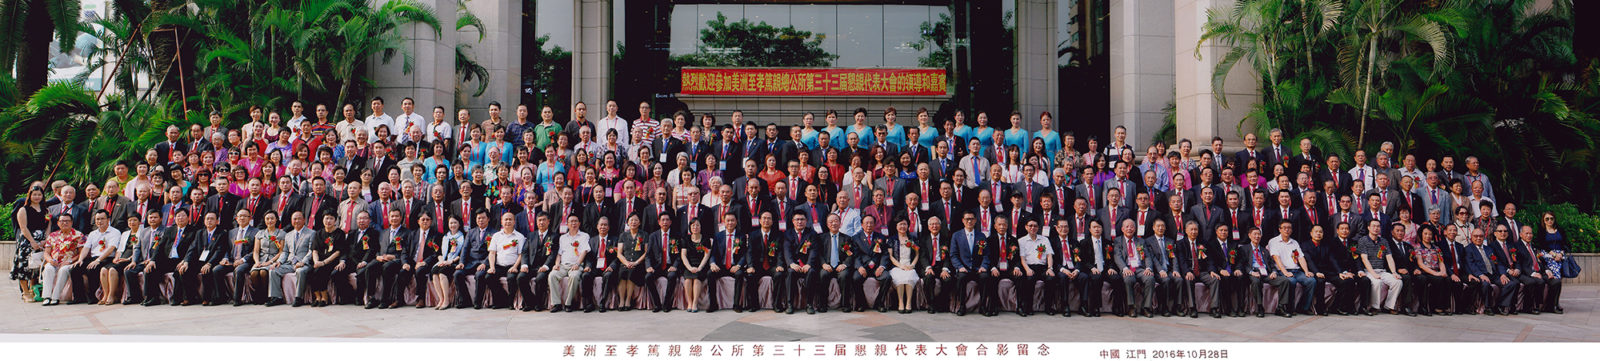 association_group_photo_nov2016_low-res